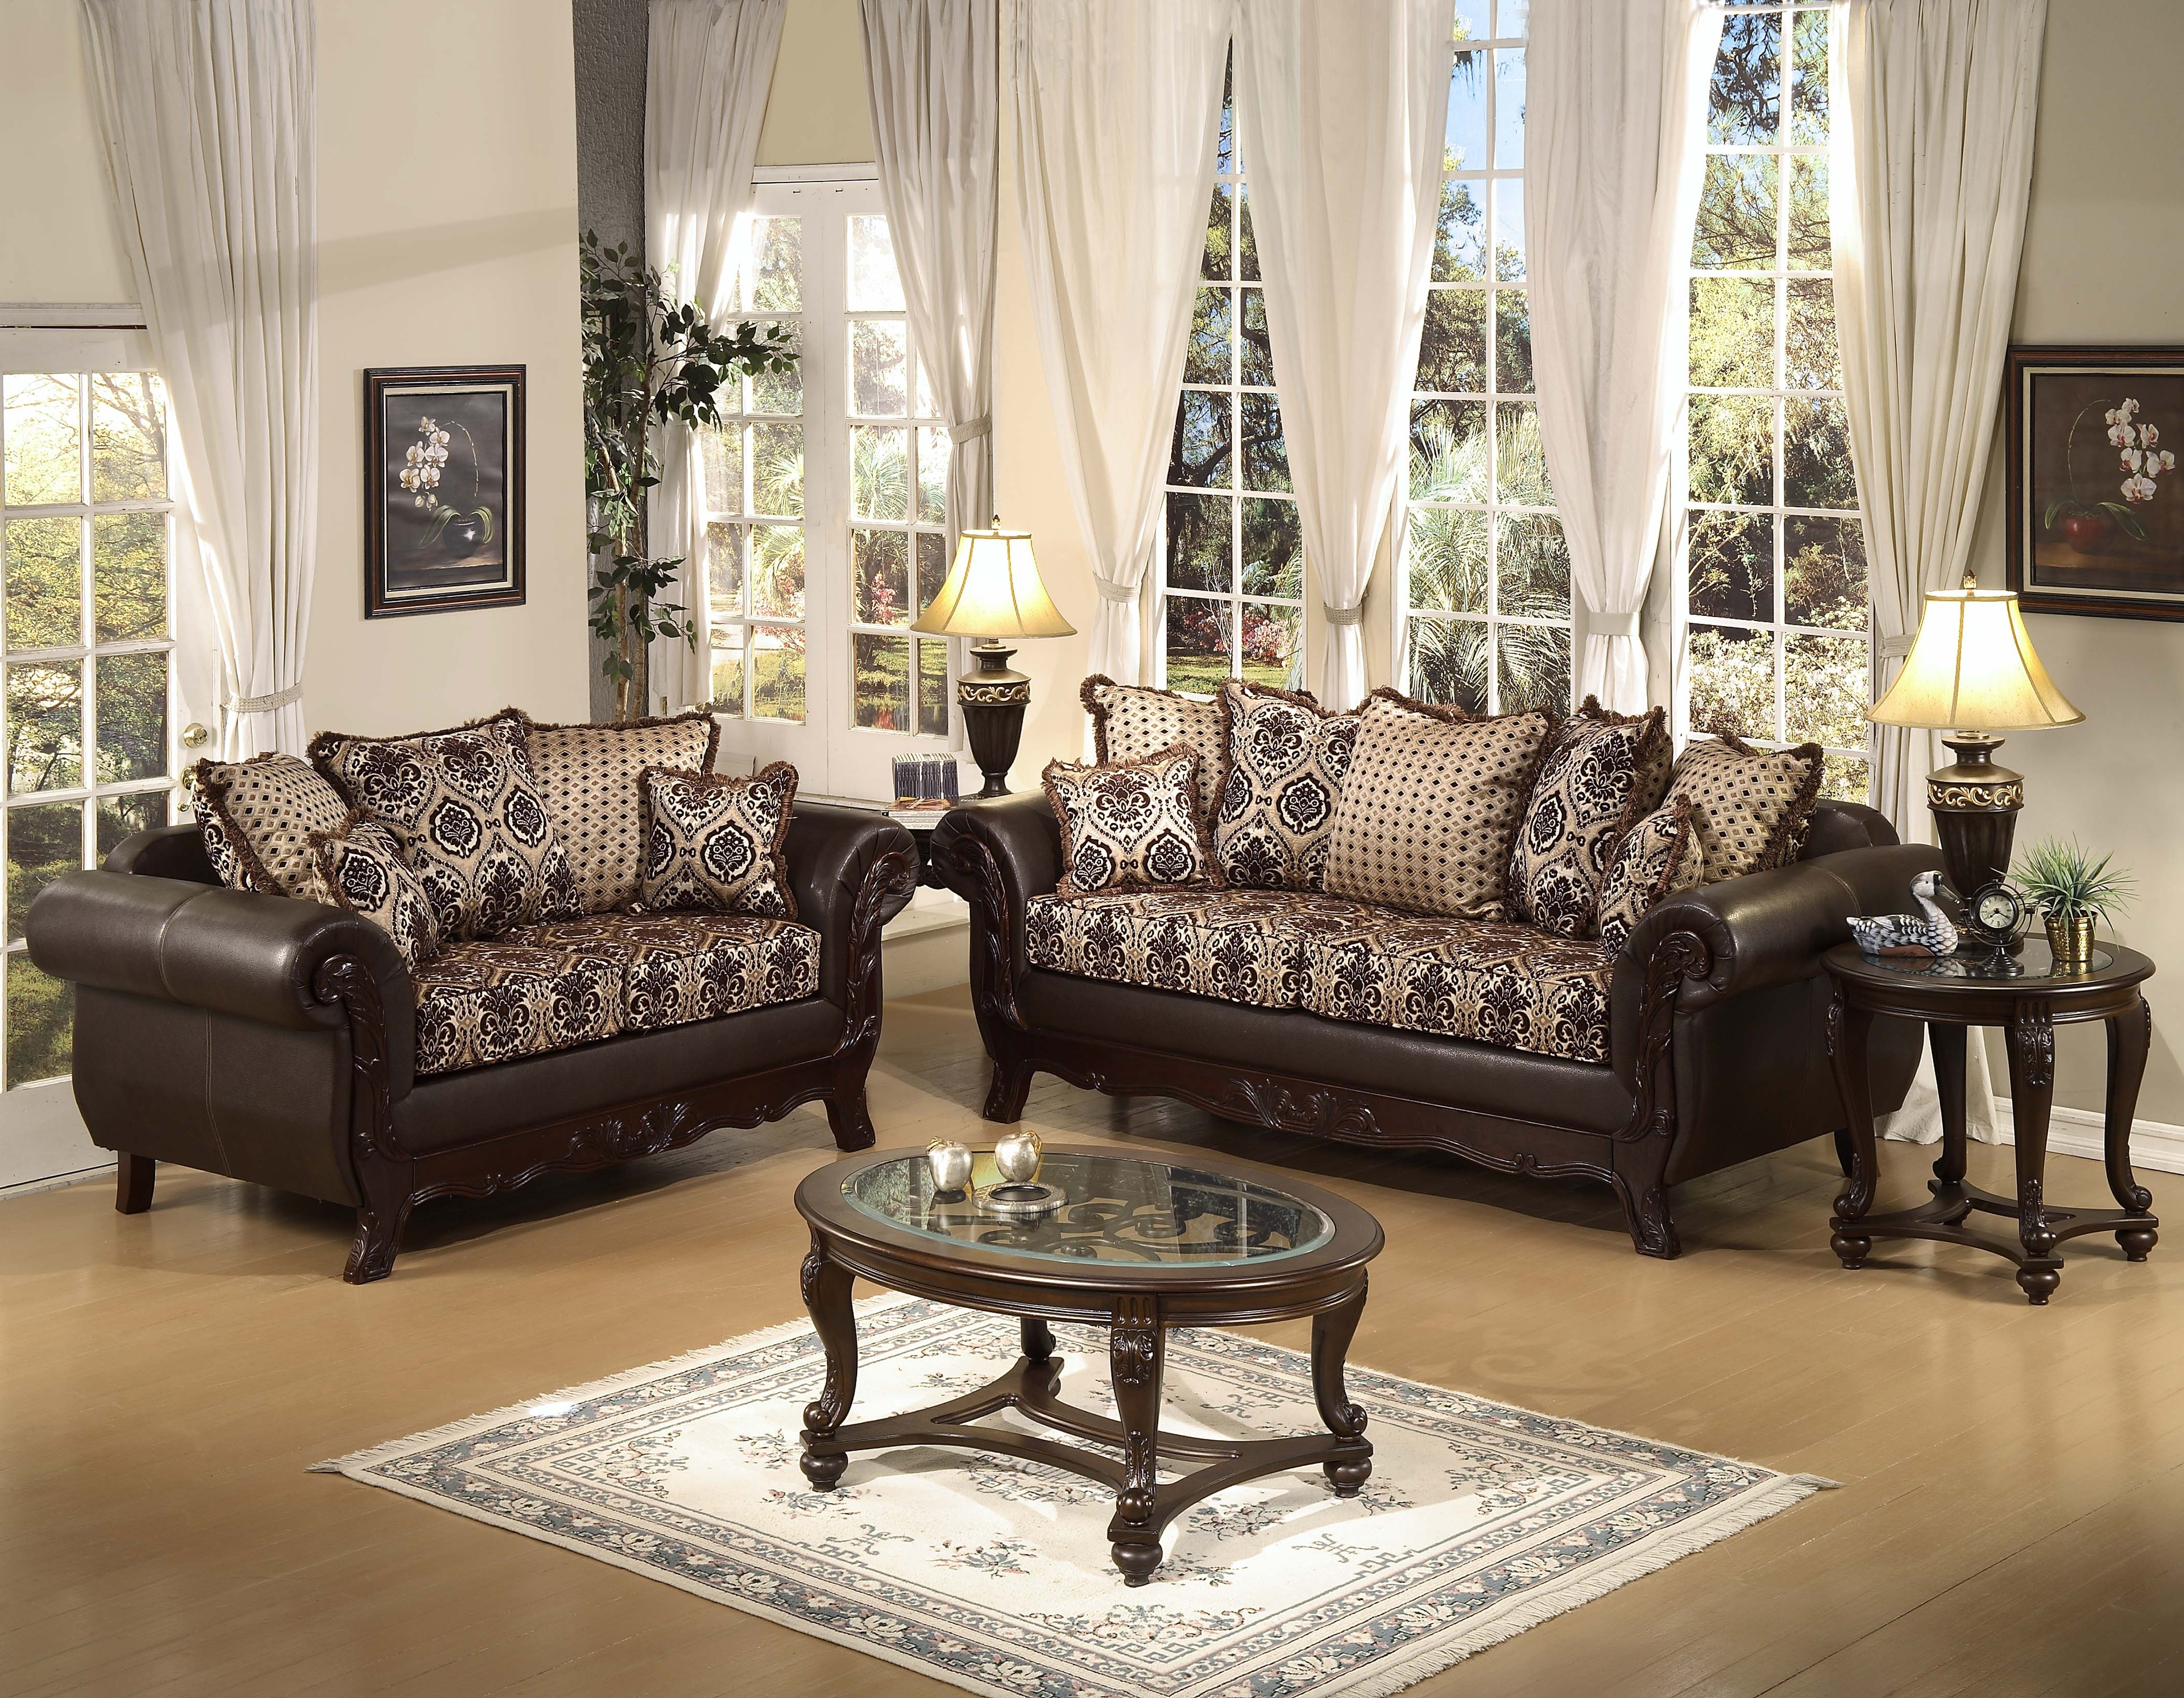 Aarons Living Room Sets With Leather Furniture Collection Images Throughout Famous Sectional Sofas At Aarons (View 5 of 20)